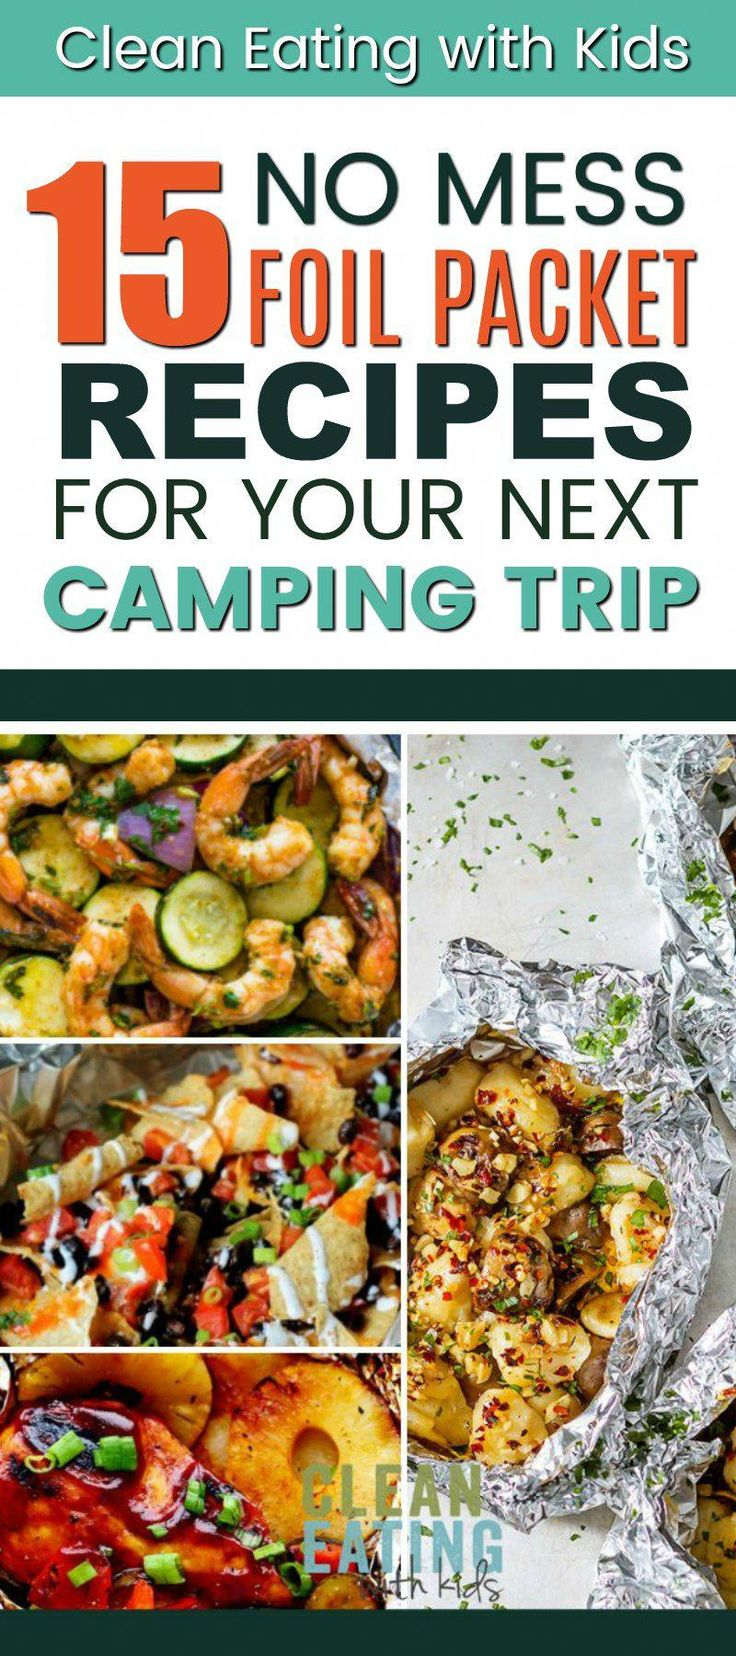 family camping trip #camping with family   – Family camping